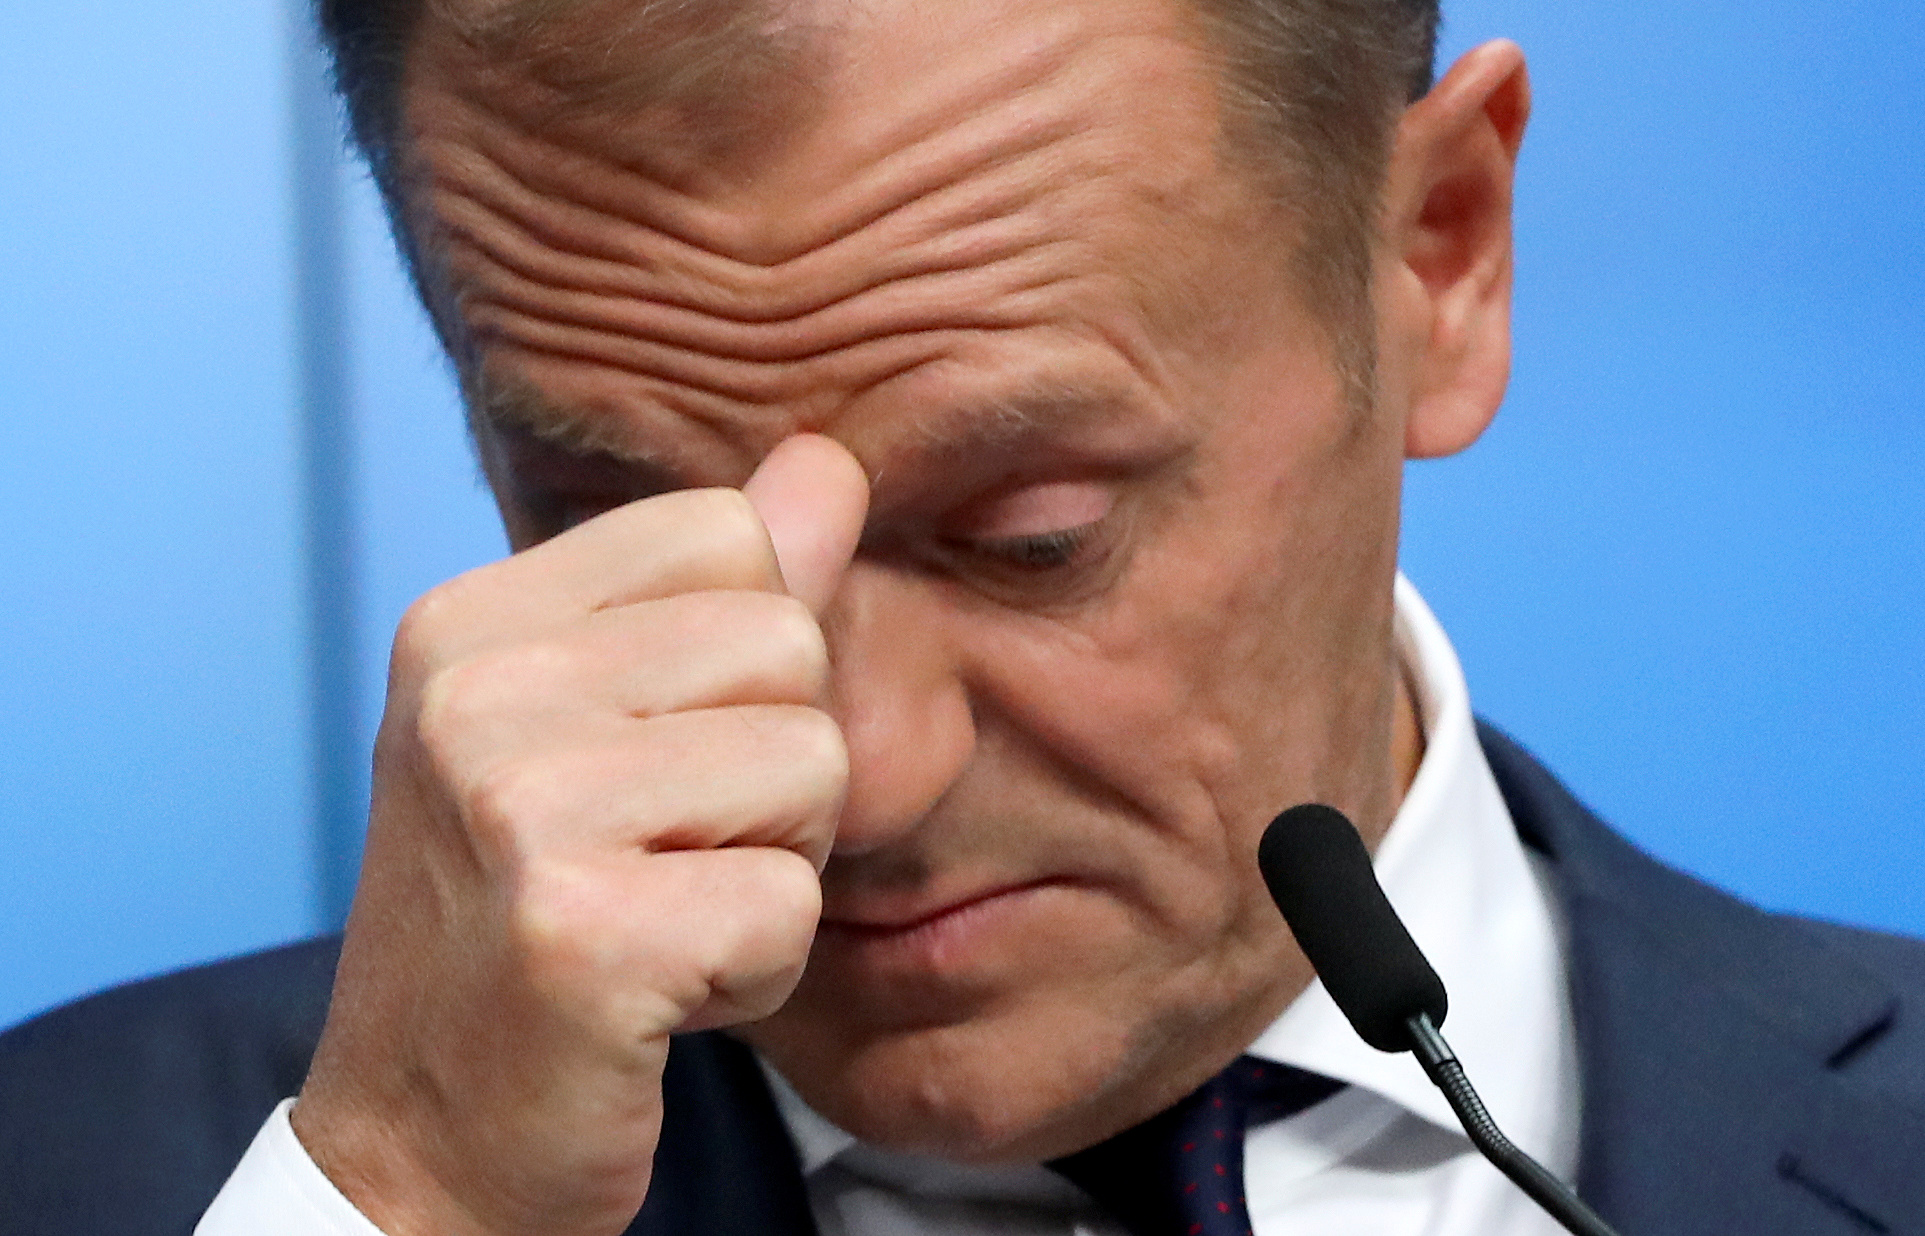 European Council President Donald Tusk reacts as he holds a news conference after an extraordinary European Union leaders summit to discuss Brexit, in Brussels, Belgium, April 11, 2019.